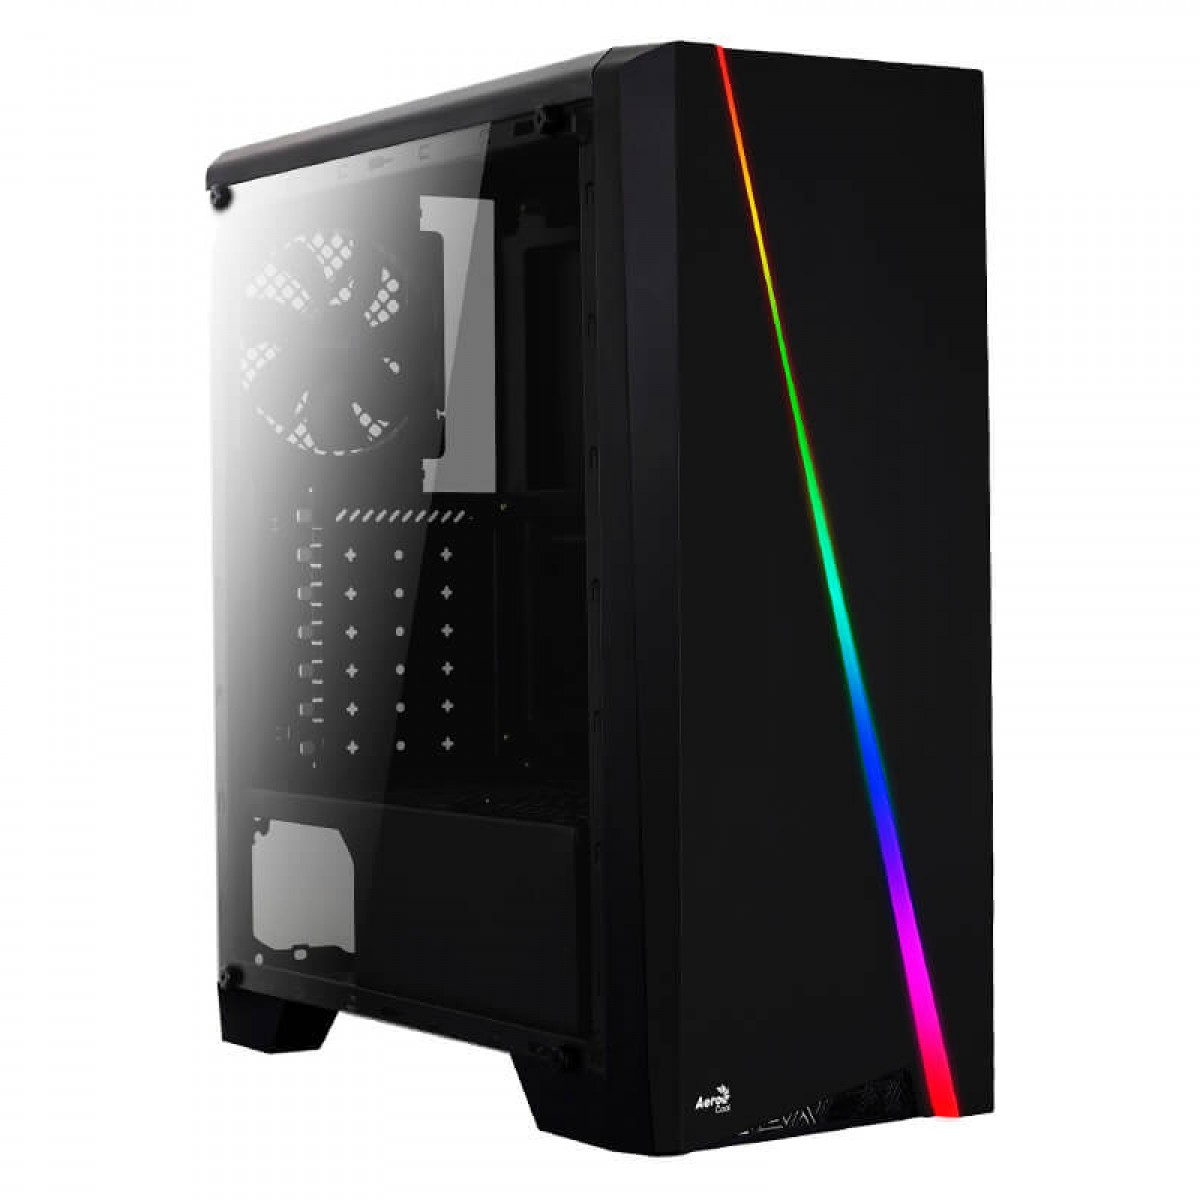 Pc Gamer T-power Special Edition Lvl-8 Intel I7 9700k 3.60GHz / GeForce RTX 2080 Ti 11Gb / 8Gb DDR4 / Hd 1Tb / 600W